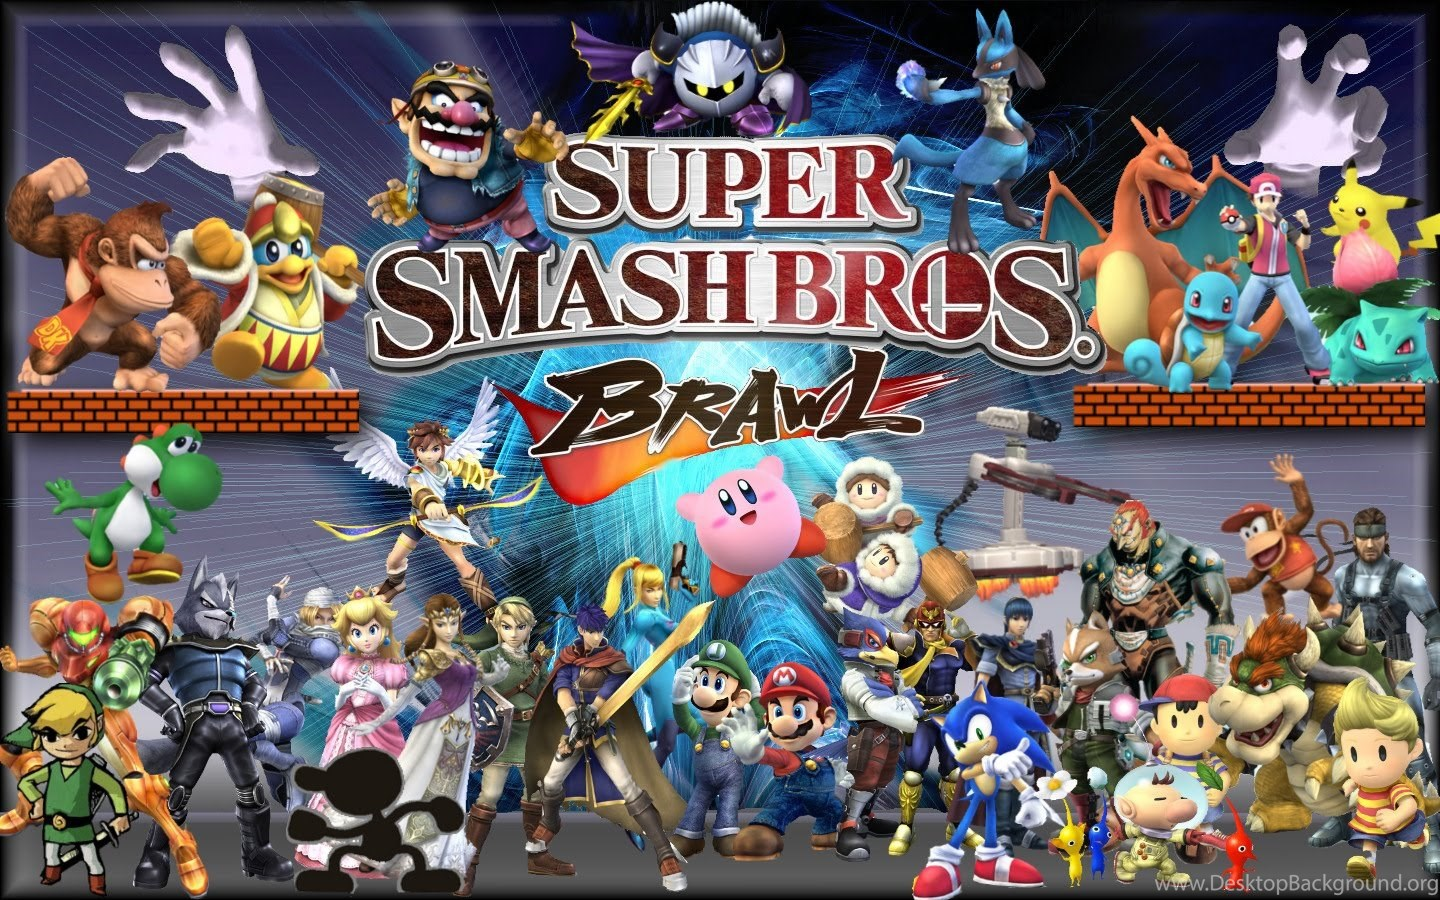 Disney Hd Wallpapers Super Smash Bros Brawl Hd Wallpapers